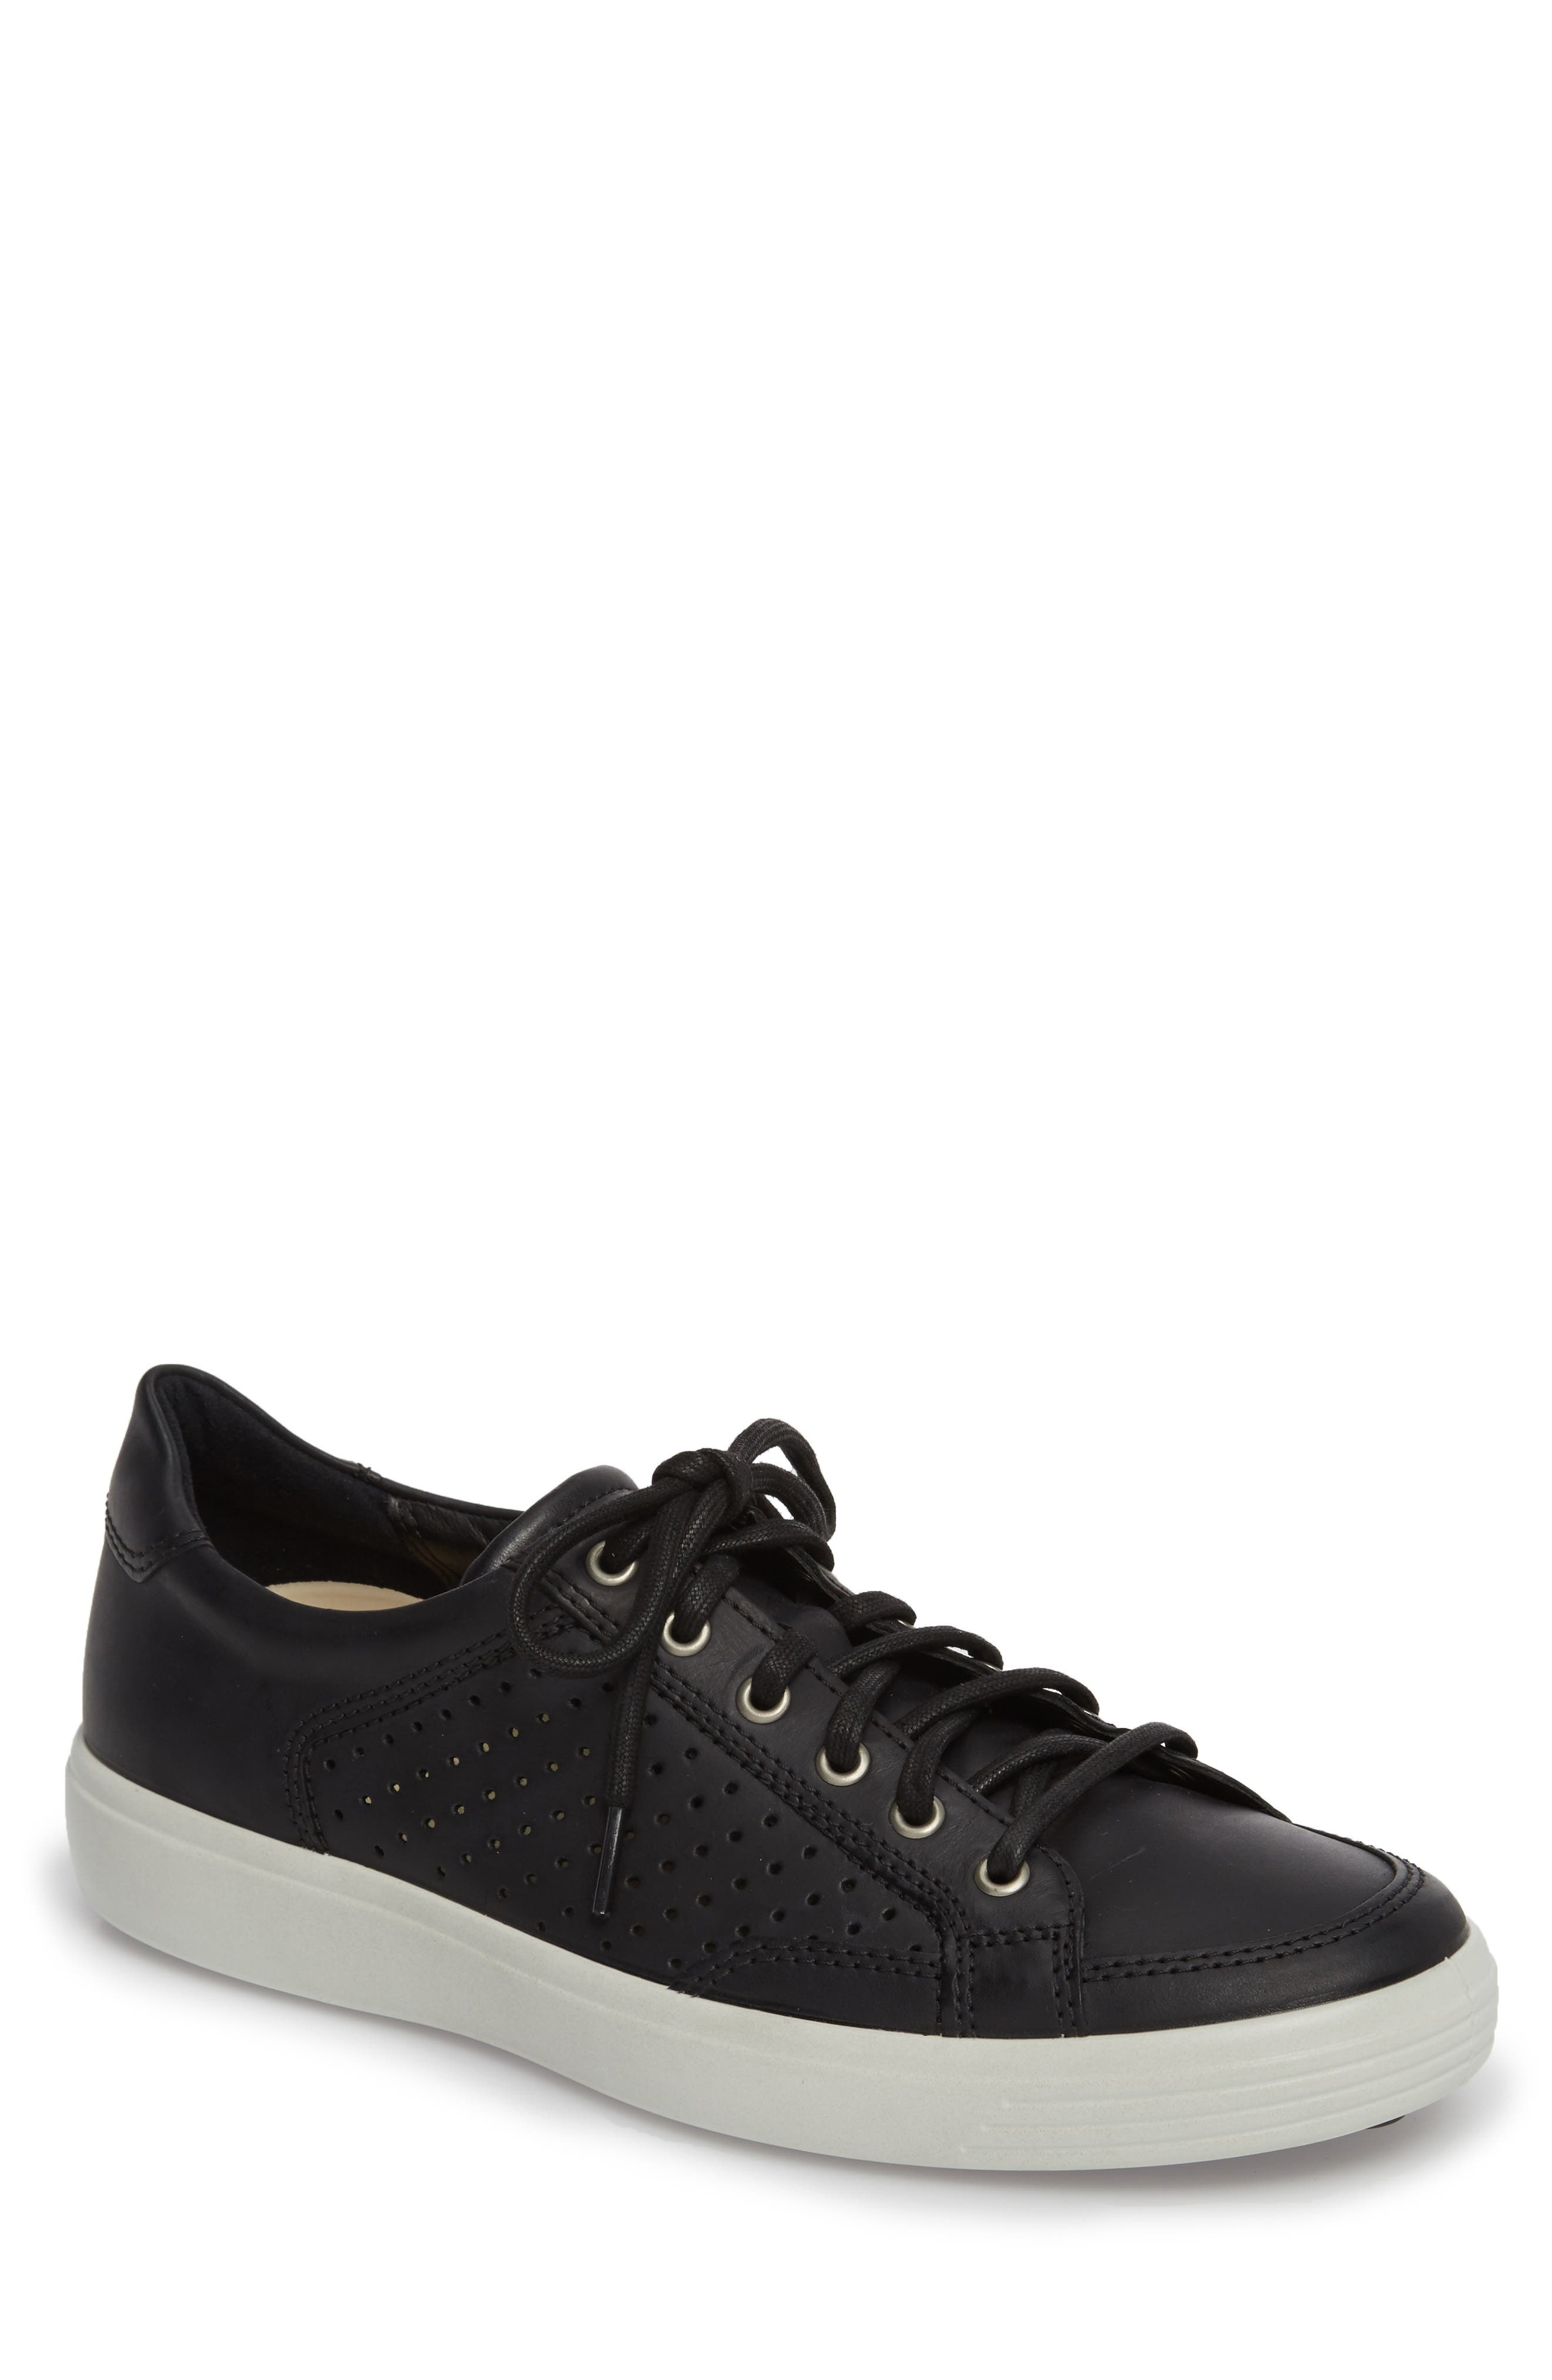 Soft 7 Retro Perforated Low Top Sneaker,                         Main,                         color, Black Leather